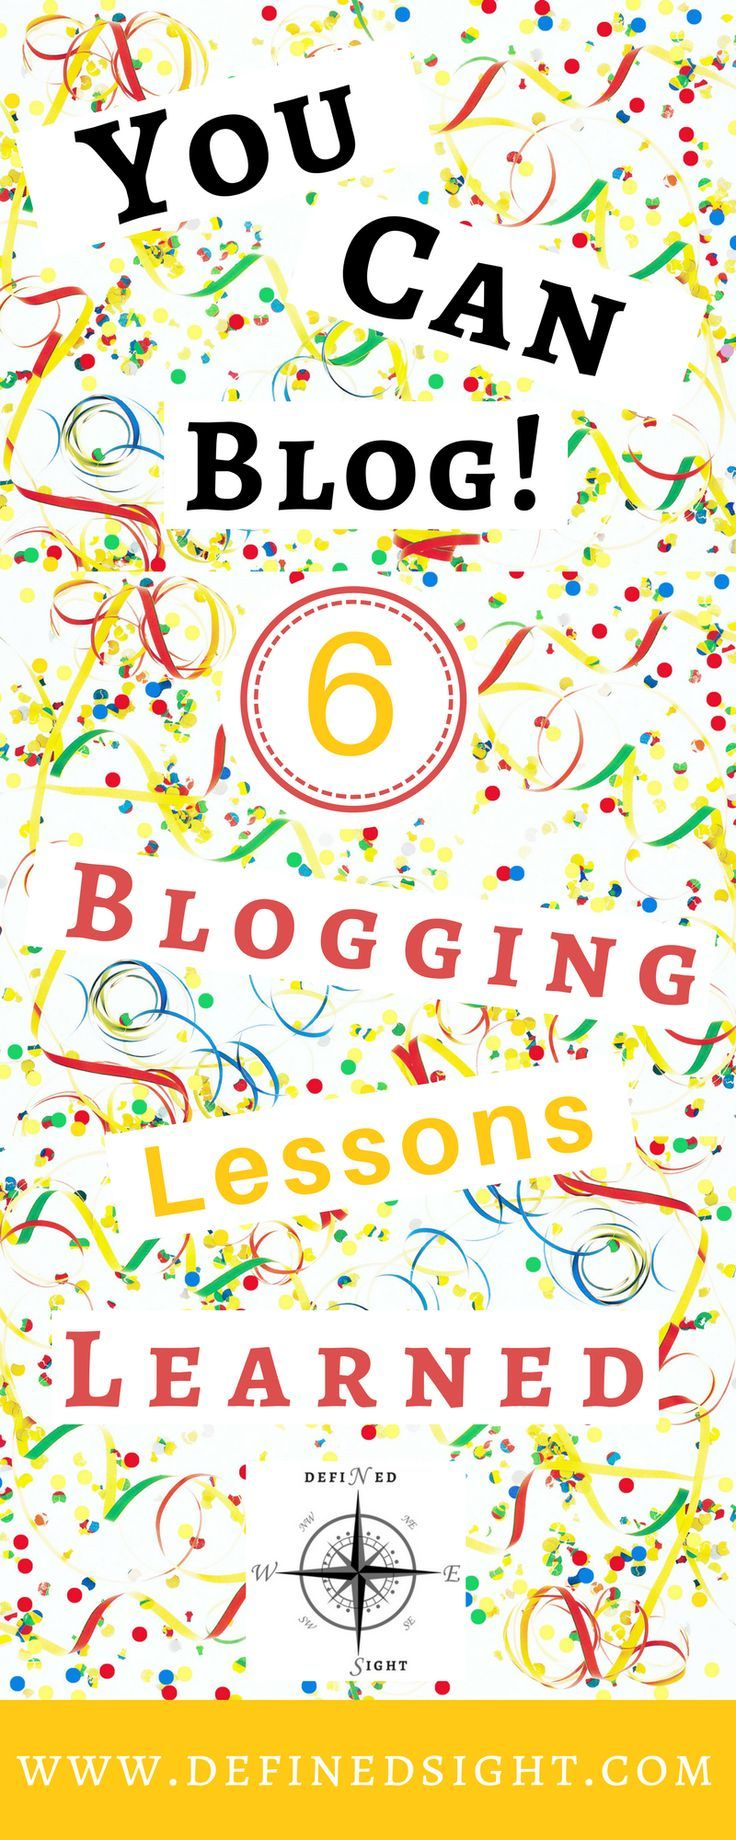 Defined Sight is celebrating their 100th Blog Post! They share their blogging lessons learned, goals with the blog and give credit where credit is due in the blogging community. Check it out, you may be listed too! #Blogging #HowToBlog #BloggingForBeginners #Lifestyle #PersonalDevelopment #ProfessionalDevelopment #Career #SideHustles #Finance #Budget #Savings #Richlifestyle #HowToBeHappy #BeMoreChill #DefinedSight